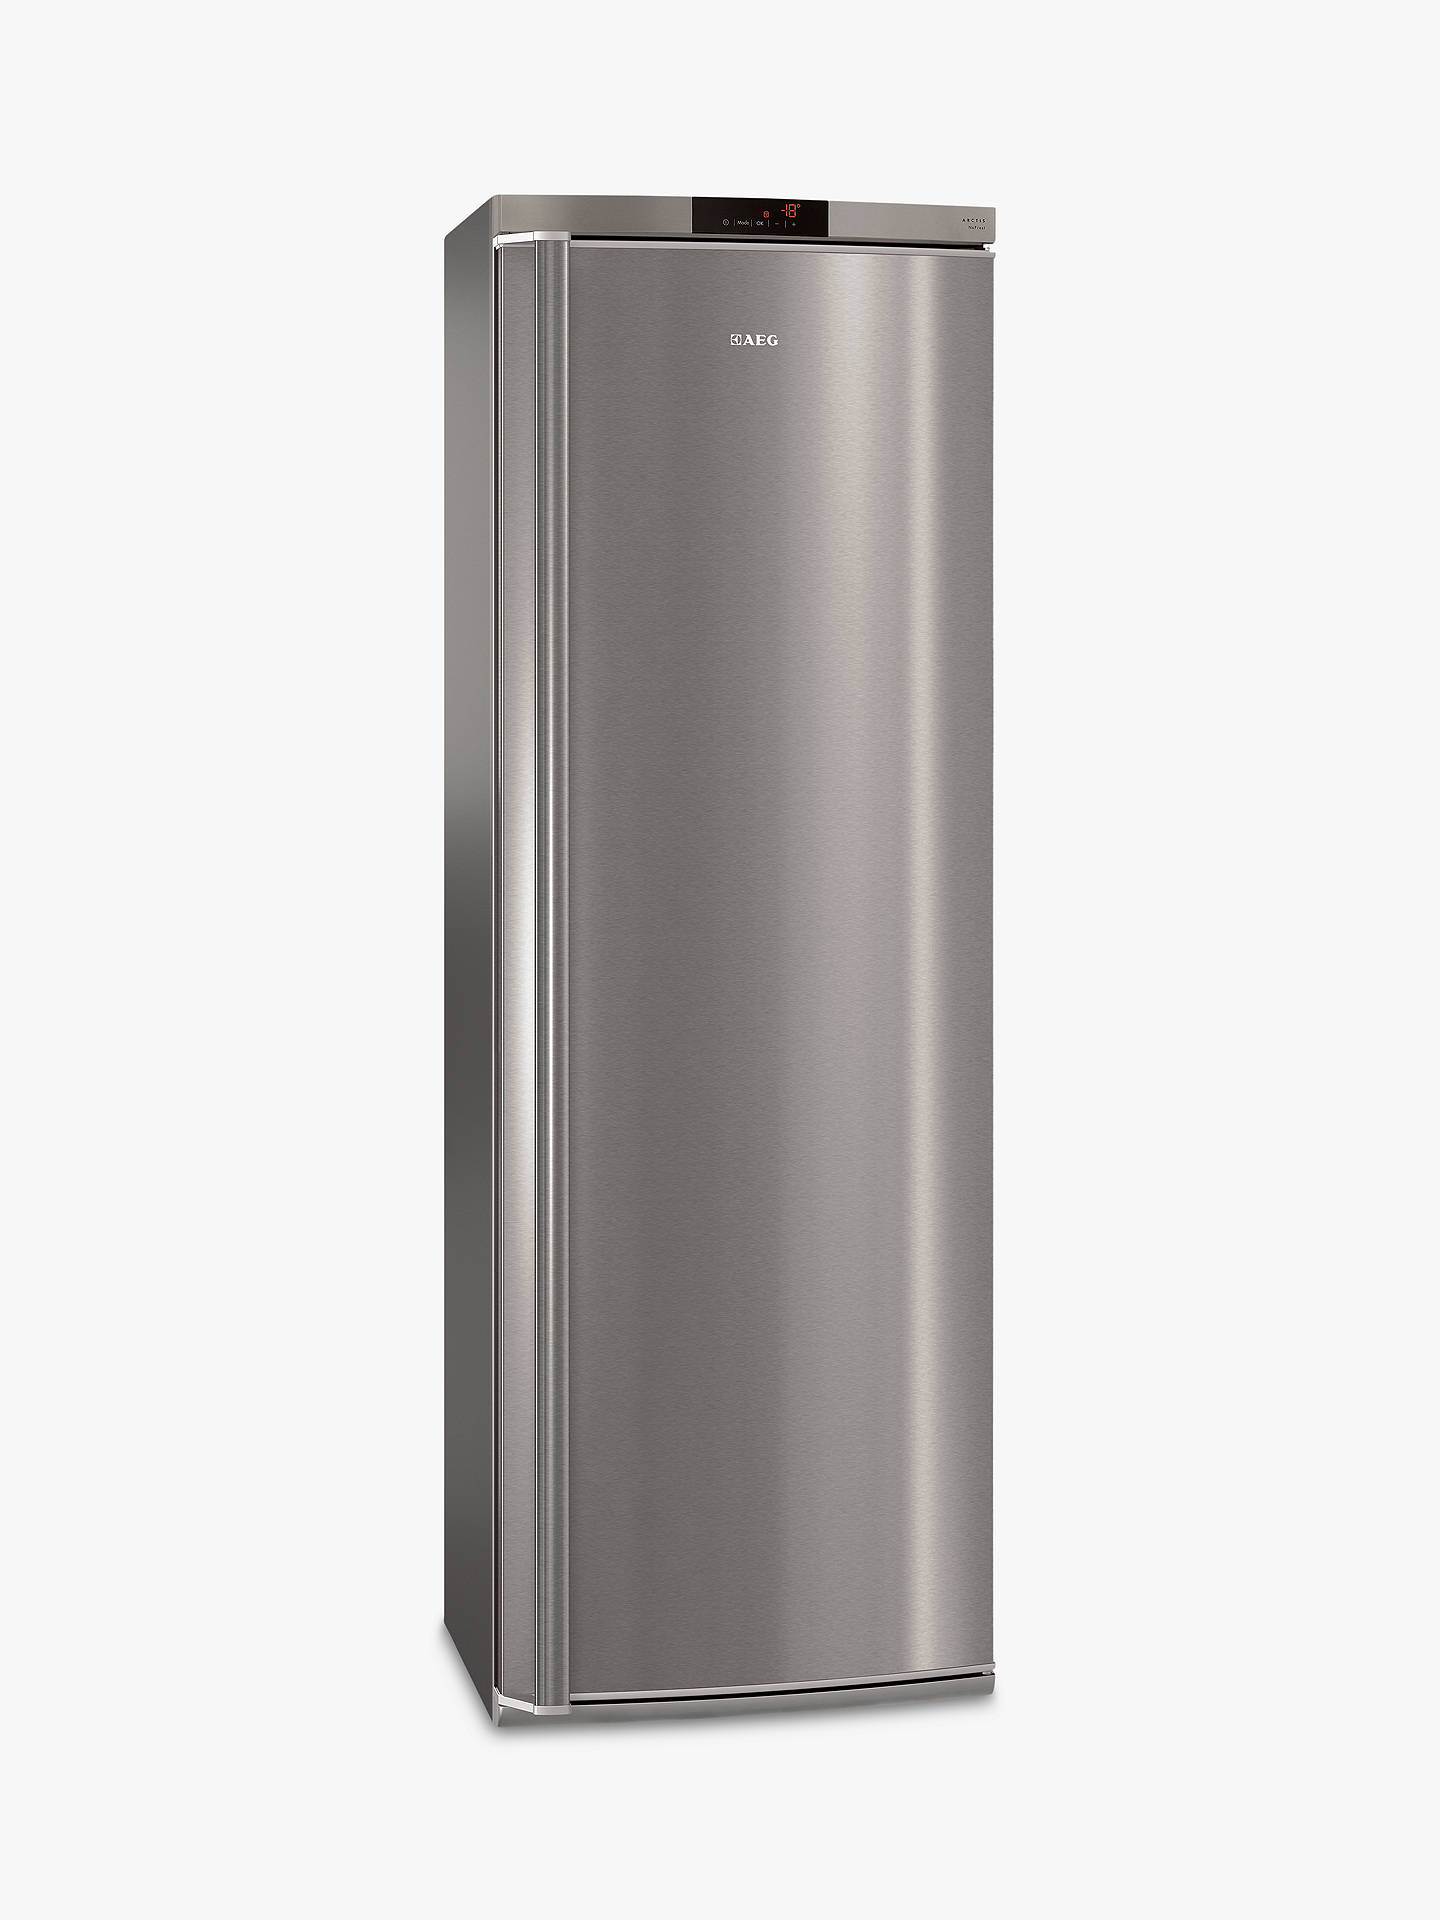 BuyAEG AGE62526NX Tall Freezer, A++ Energy Rating, 60cm Wide, Stainless Steel Online at johnlewis.com